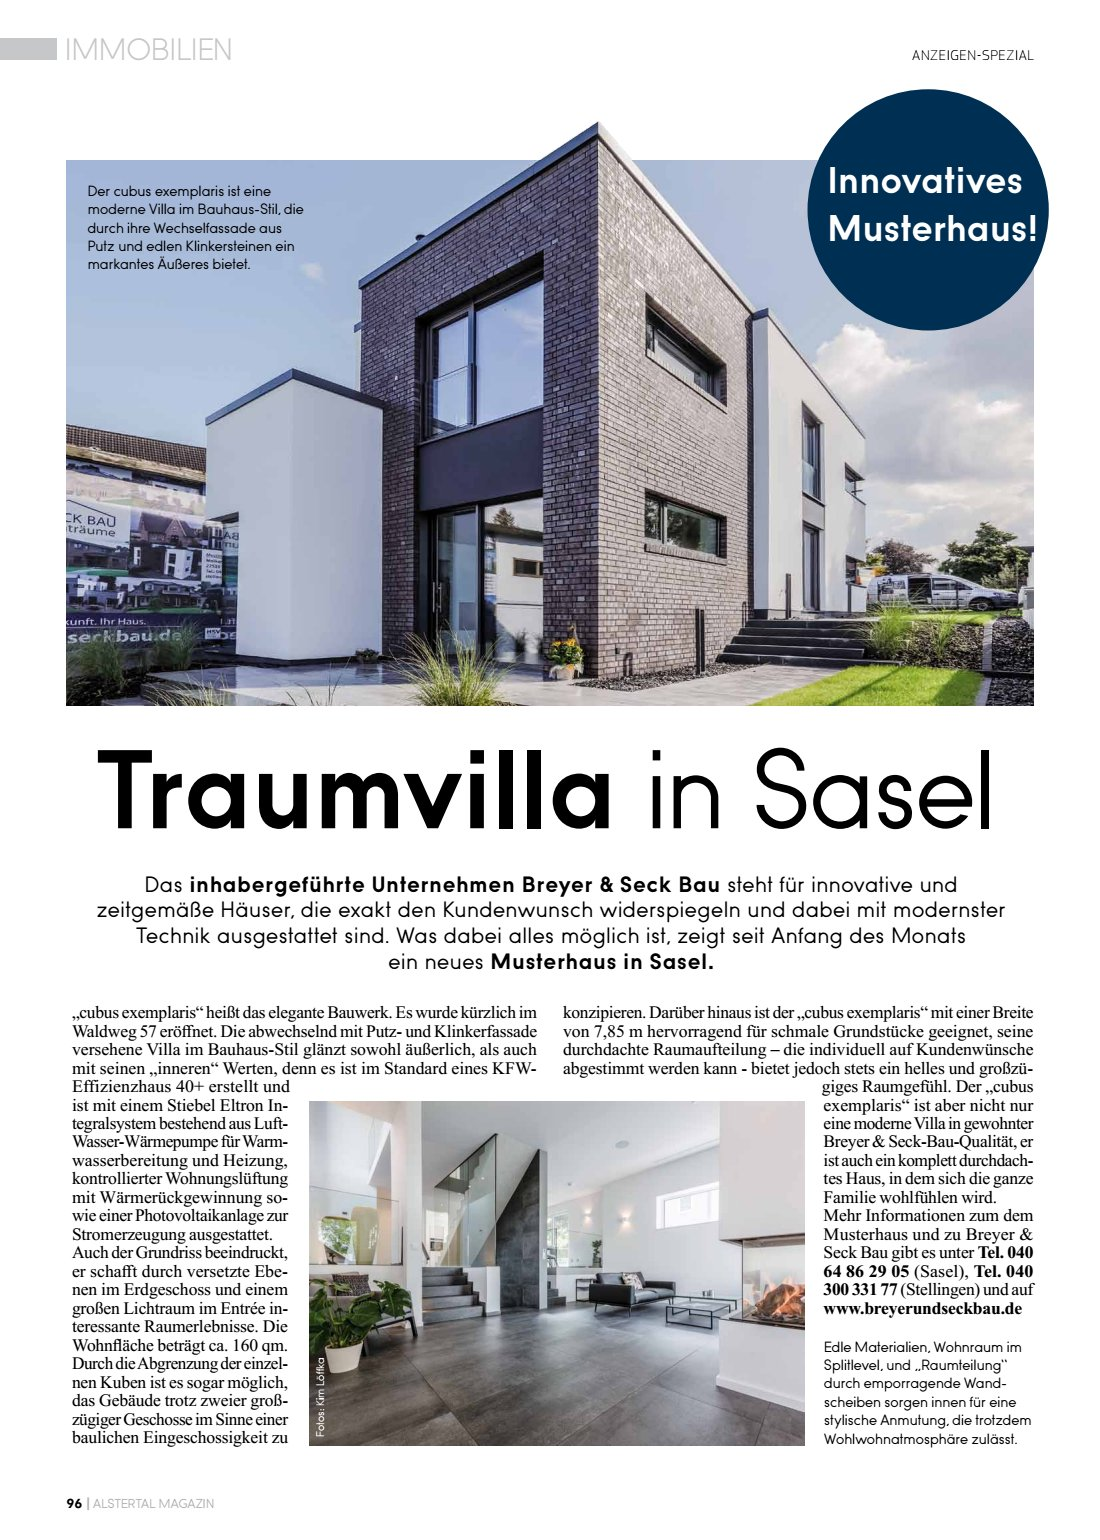 Traumvilla Sasel Innovatives